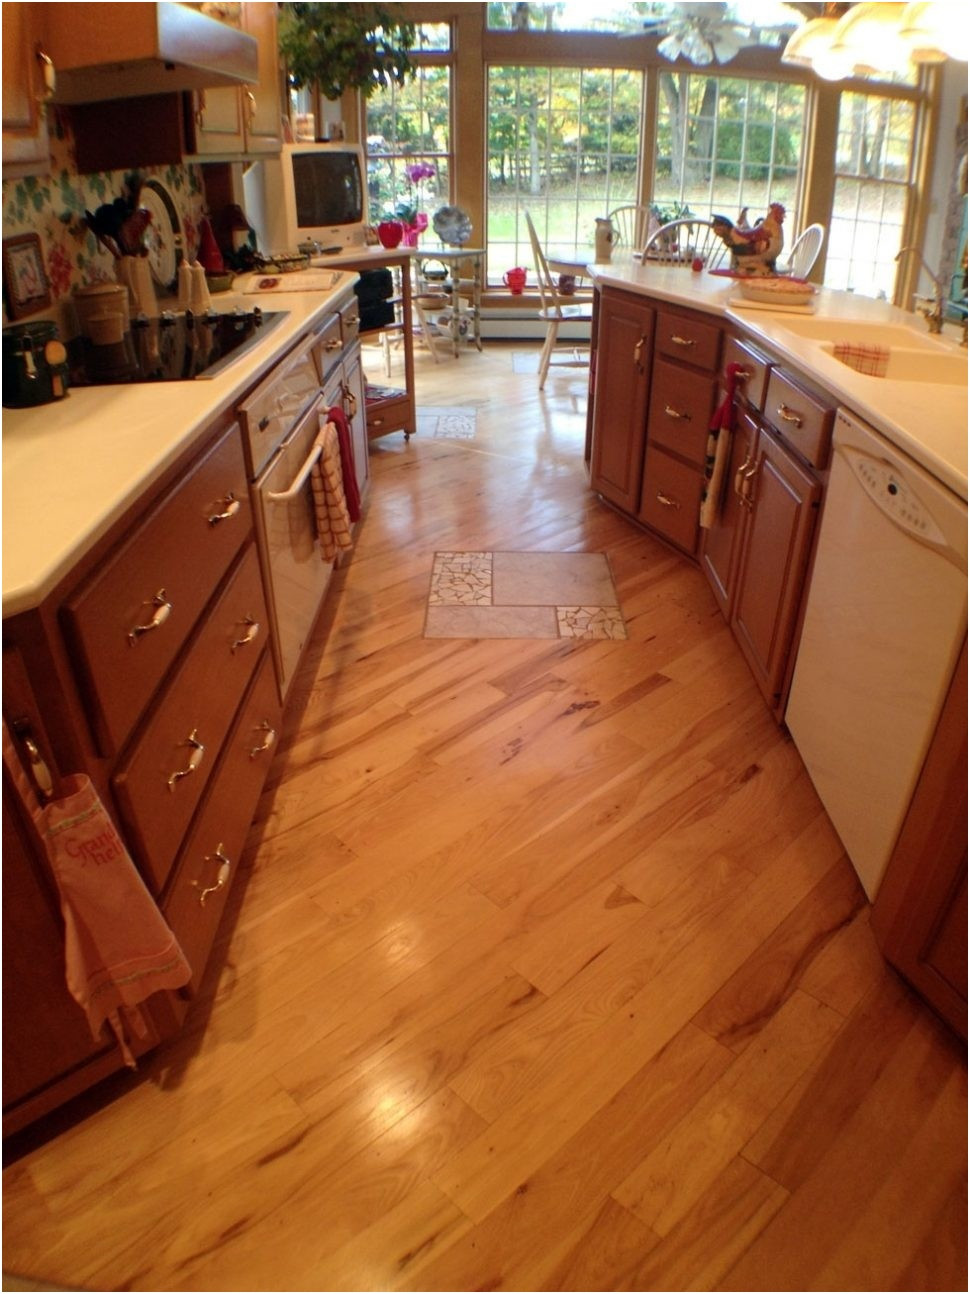 average cost to get hardwood floors installed of how much hardwood flooring cost galerie floor how to install pertaining to how much hardwood flooring cost stock hardwood flooring cost per sq ft fresh floor floor installod